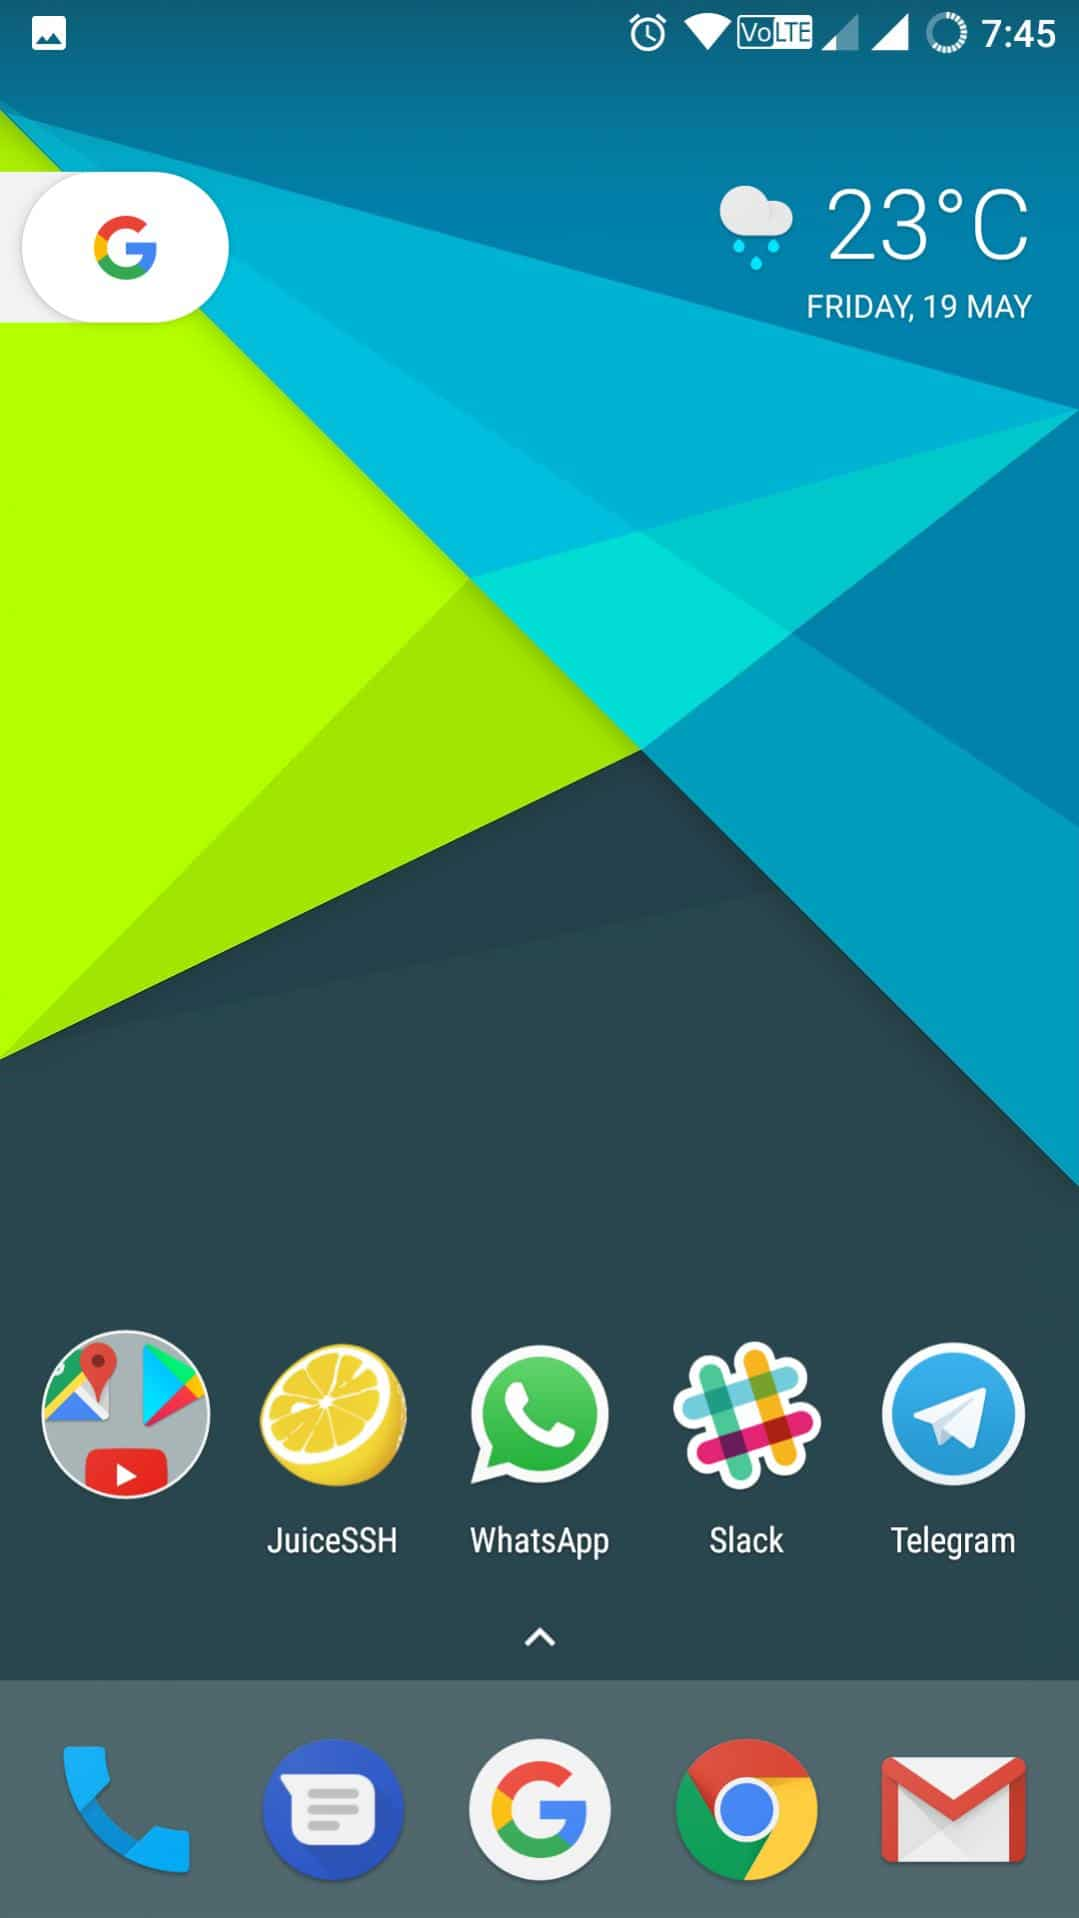 Slim7 Stable Android 7.1 Nougat ROM for Xiaomi Redmi Note 4 8